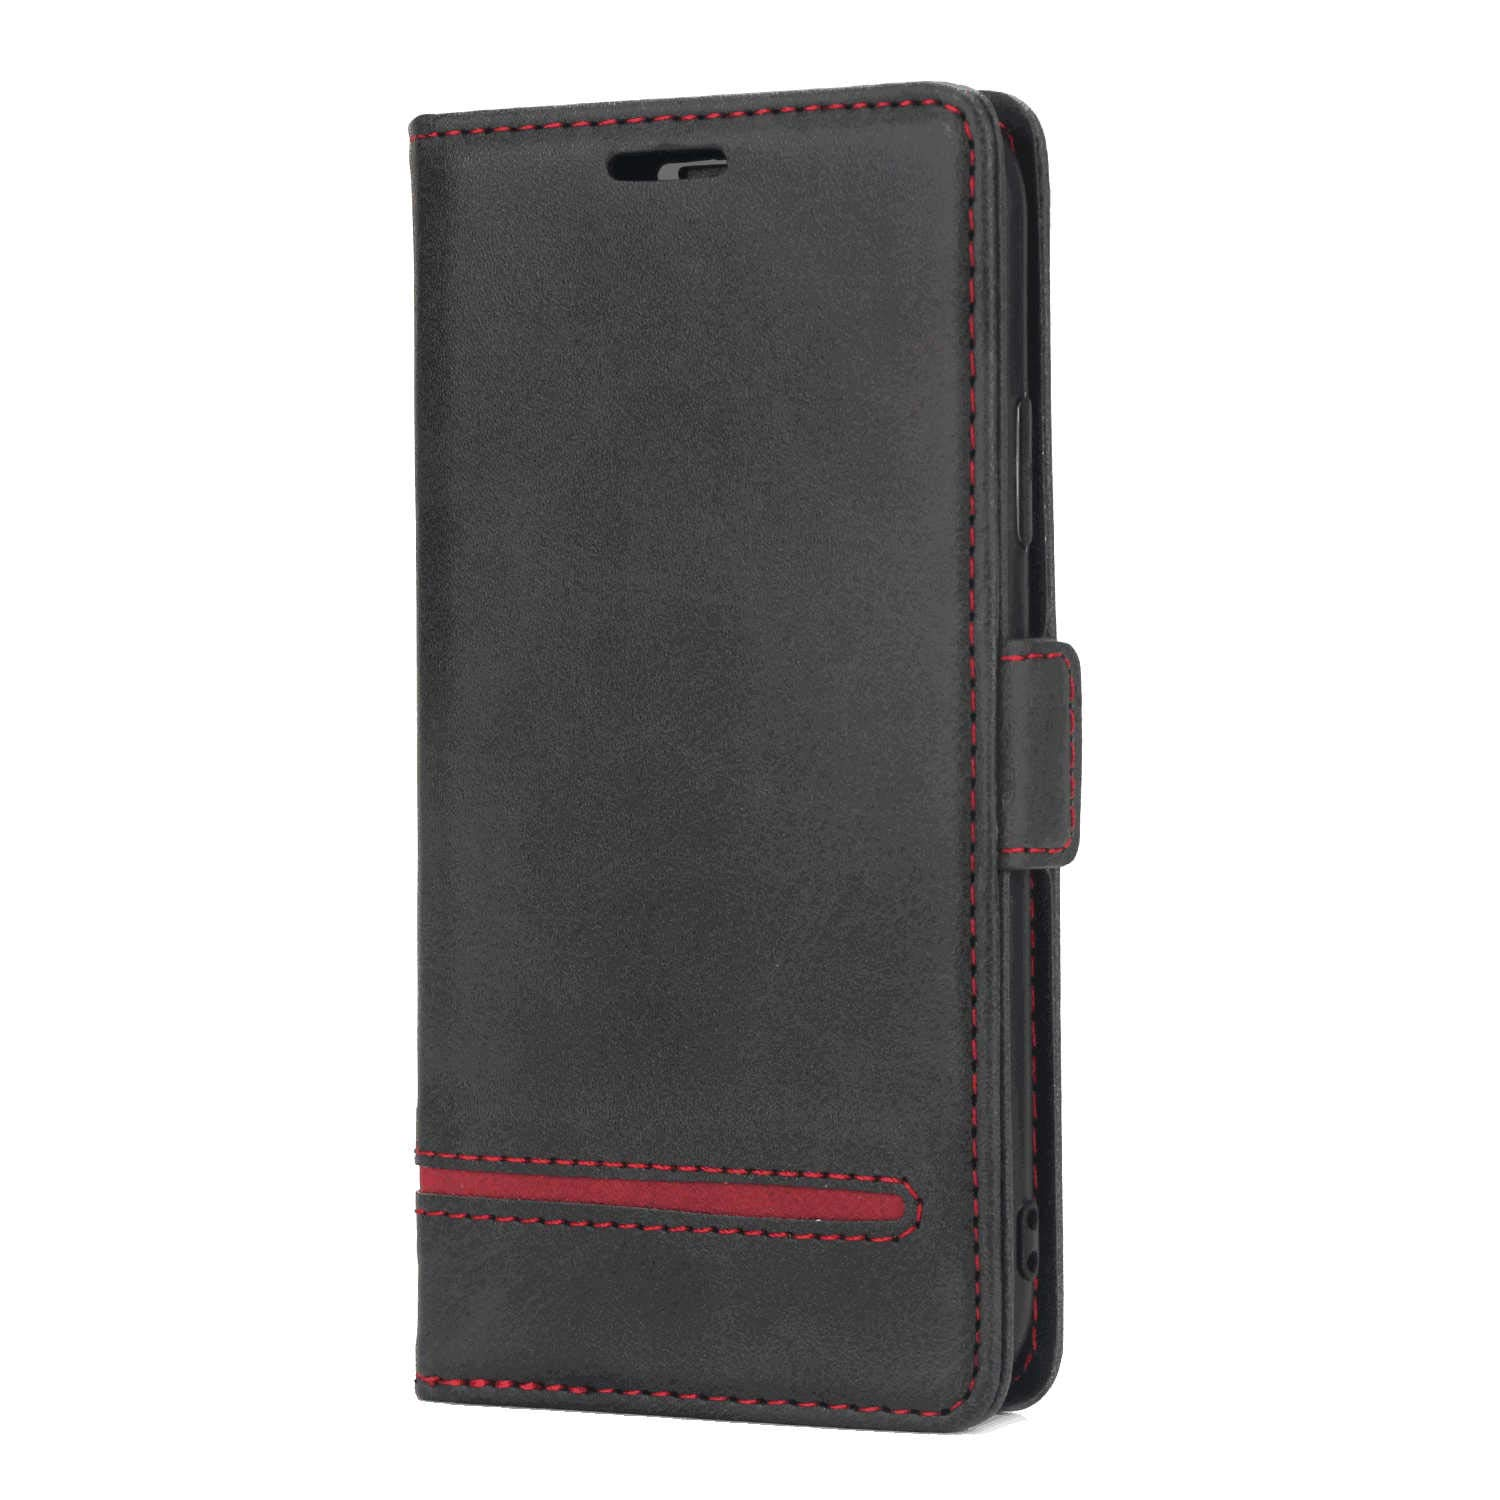 Cover for Samsung Galaxy Note10 Leather Kickstand Cell Phone Cover Luxury Business Card Holders with Free Waterproof-Bag Business Samsung Galaxy Note10 Flip Case